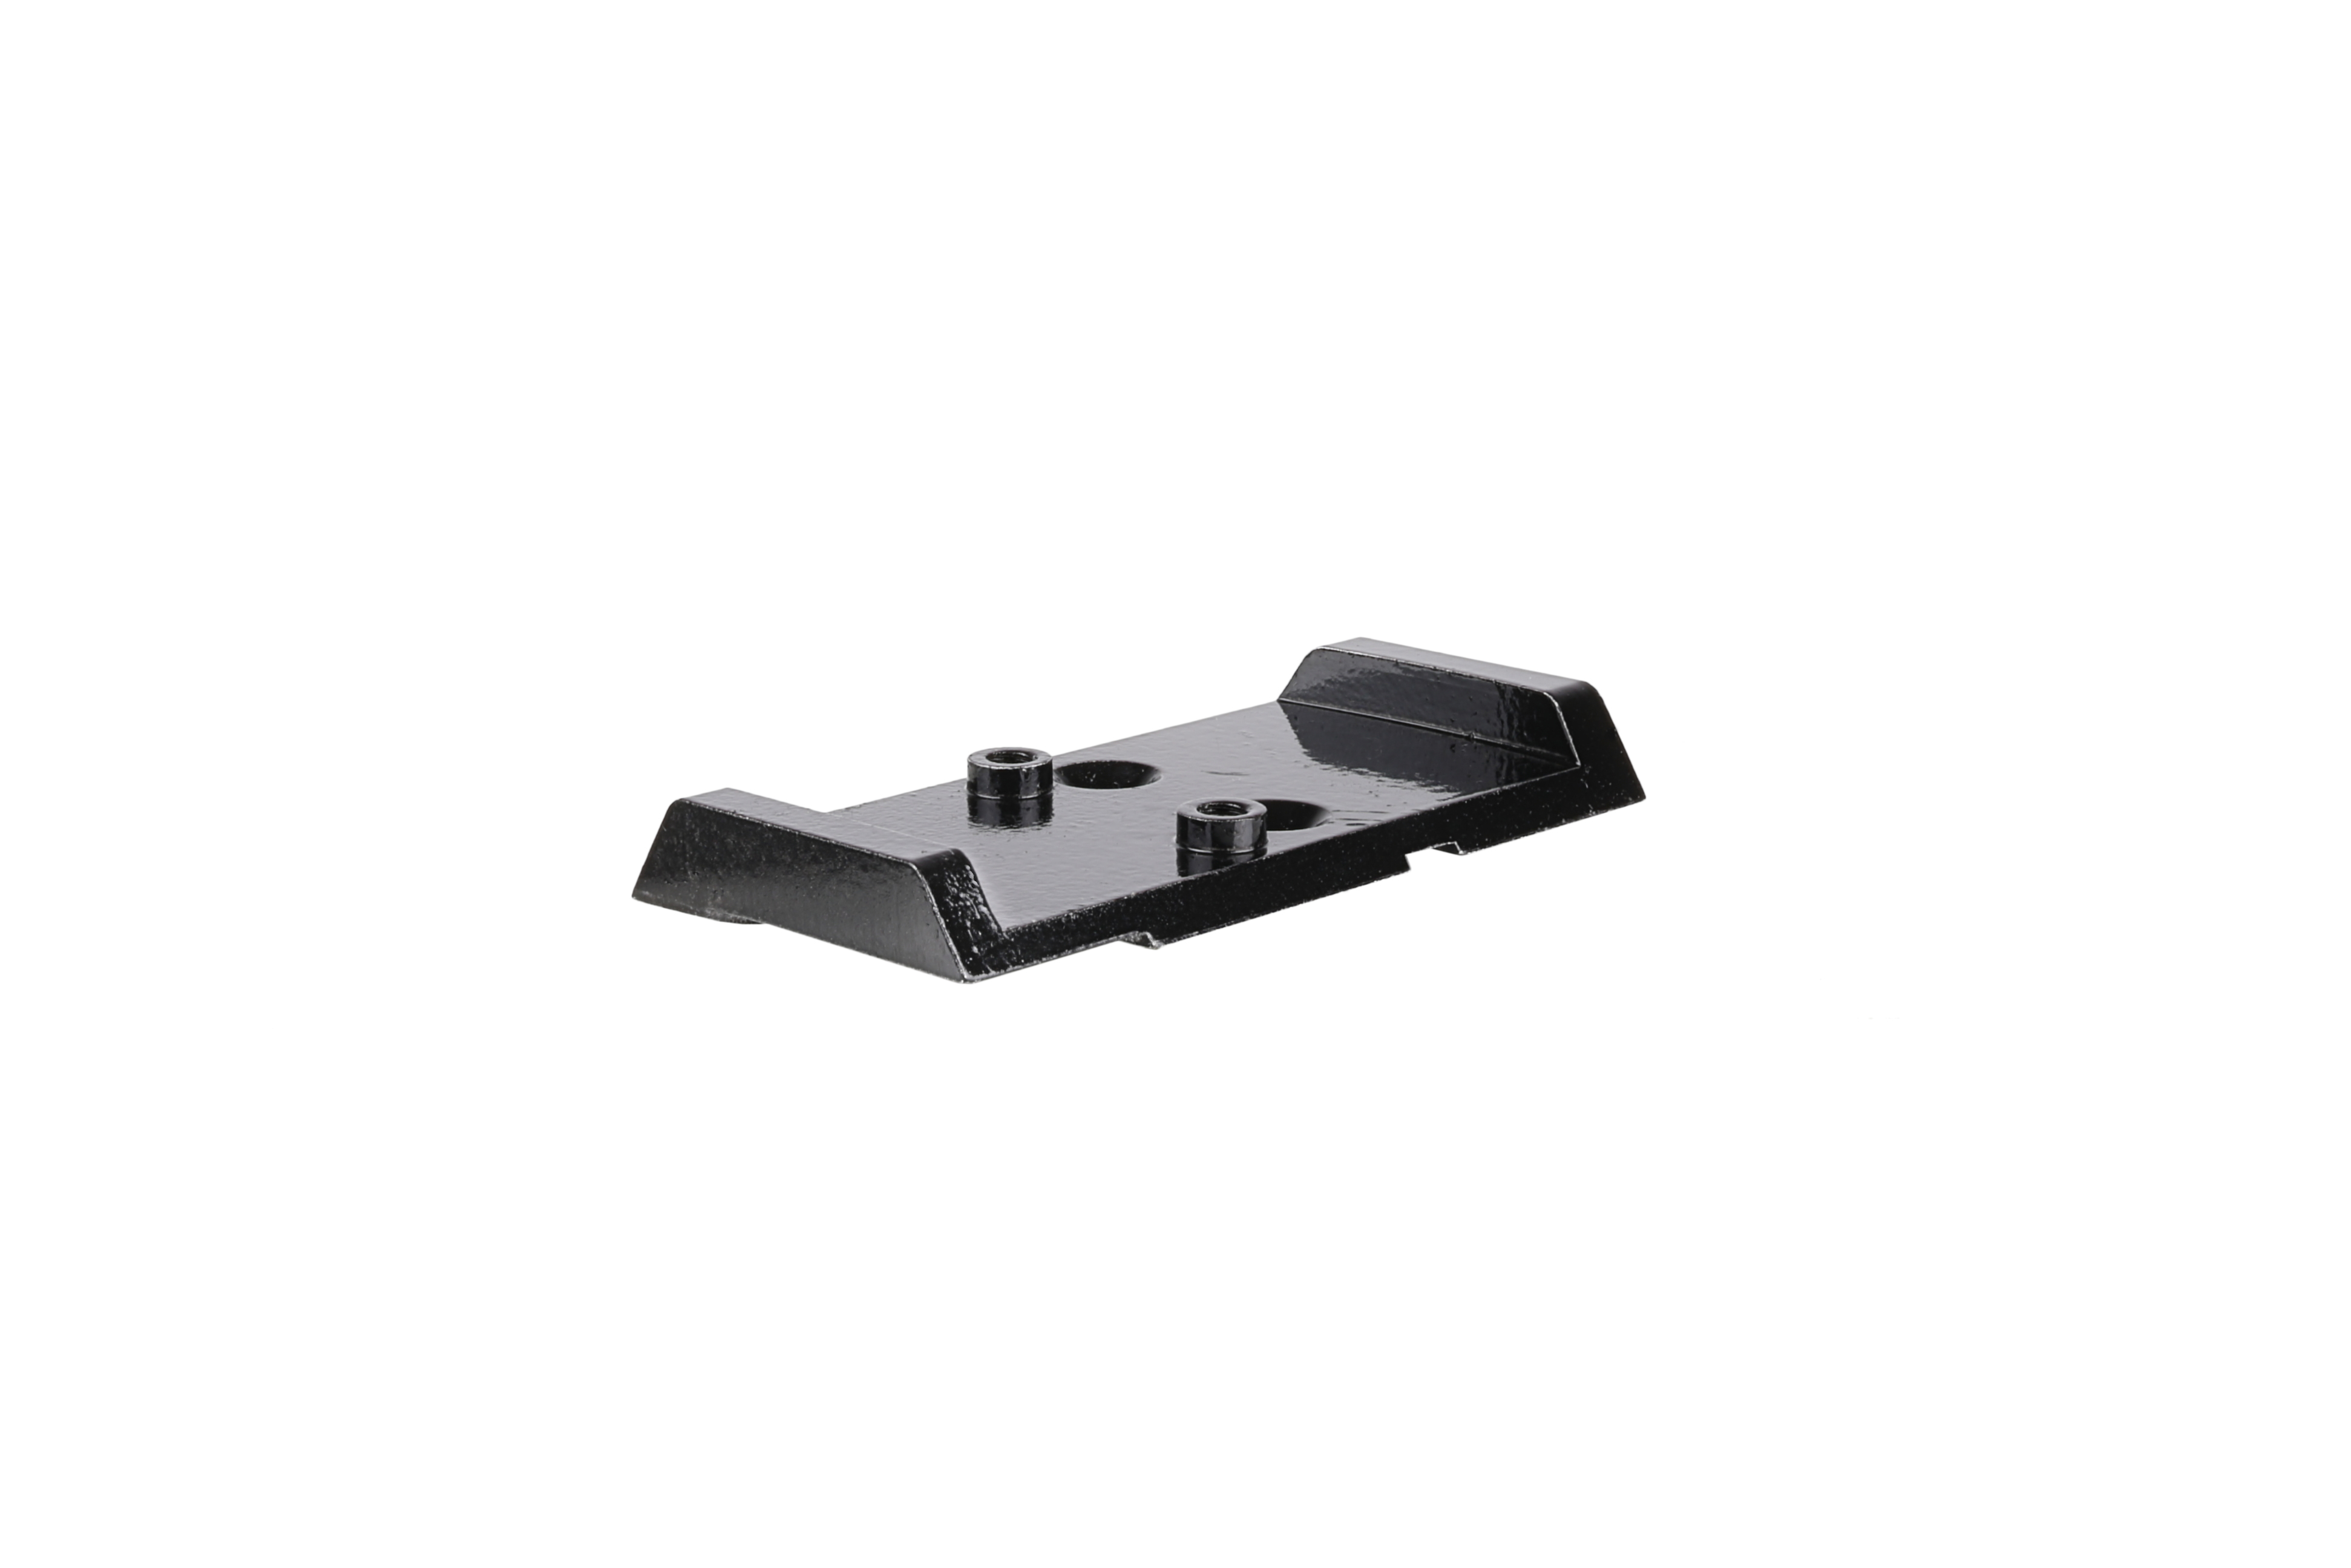 Trijicon RMR<sup>®</sup>cc Pistol Adapter Plate for CZ P-10 Optics-Ready Pistols